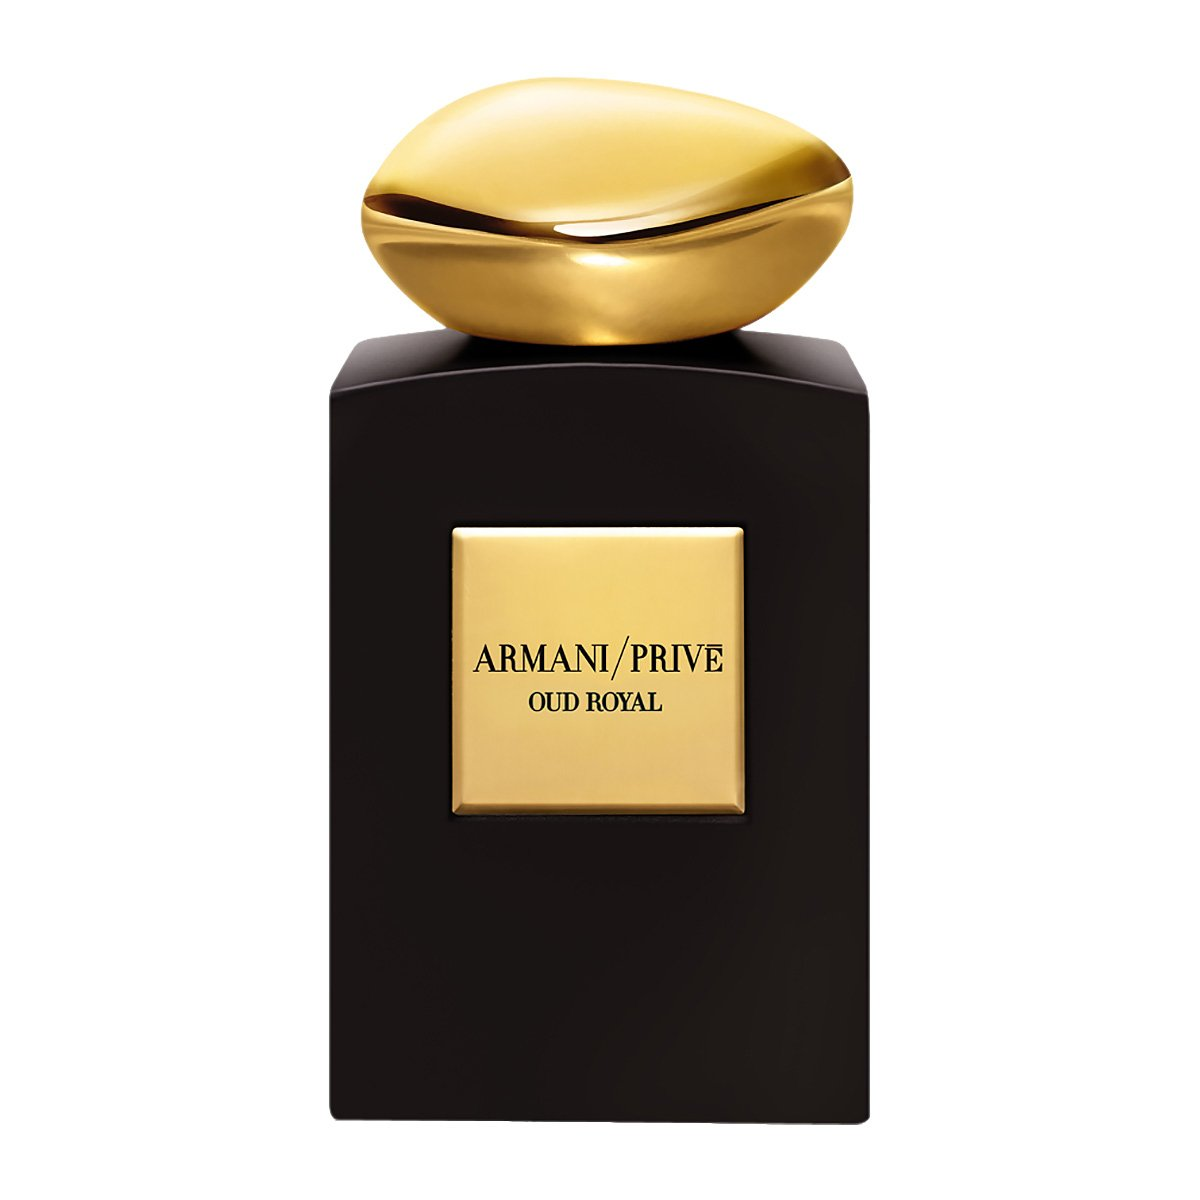 Тестер Armani Prive Oud Royal edp